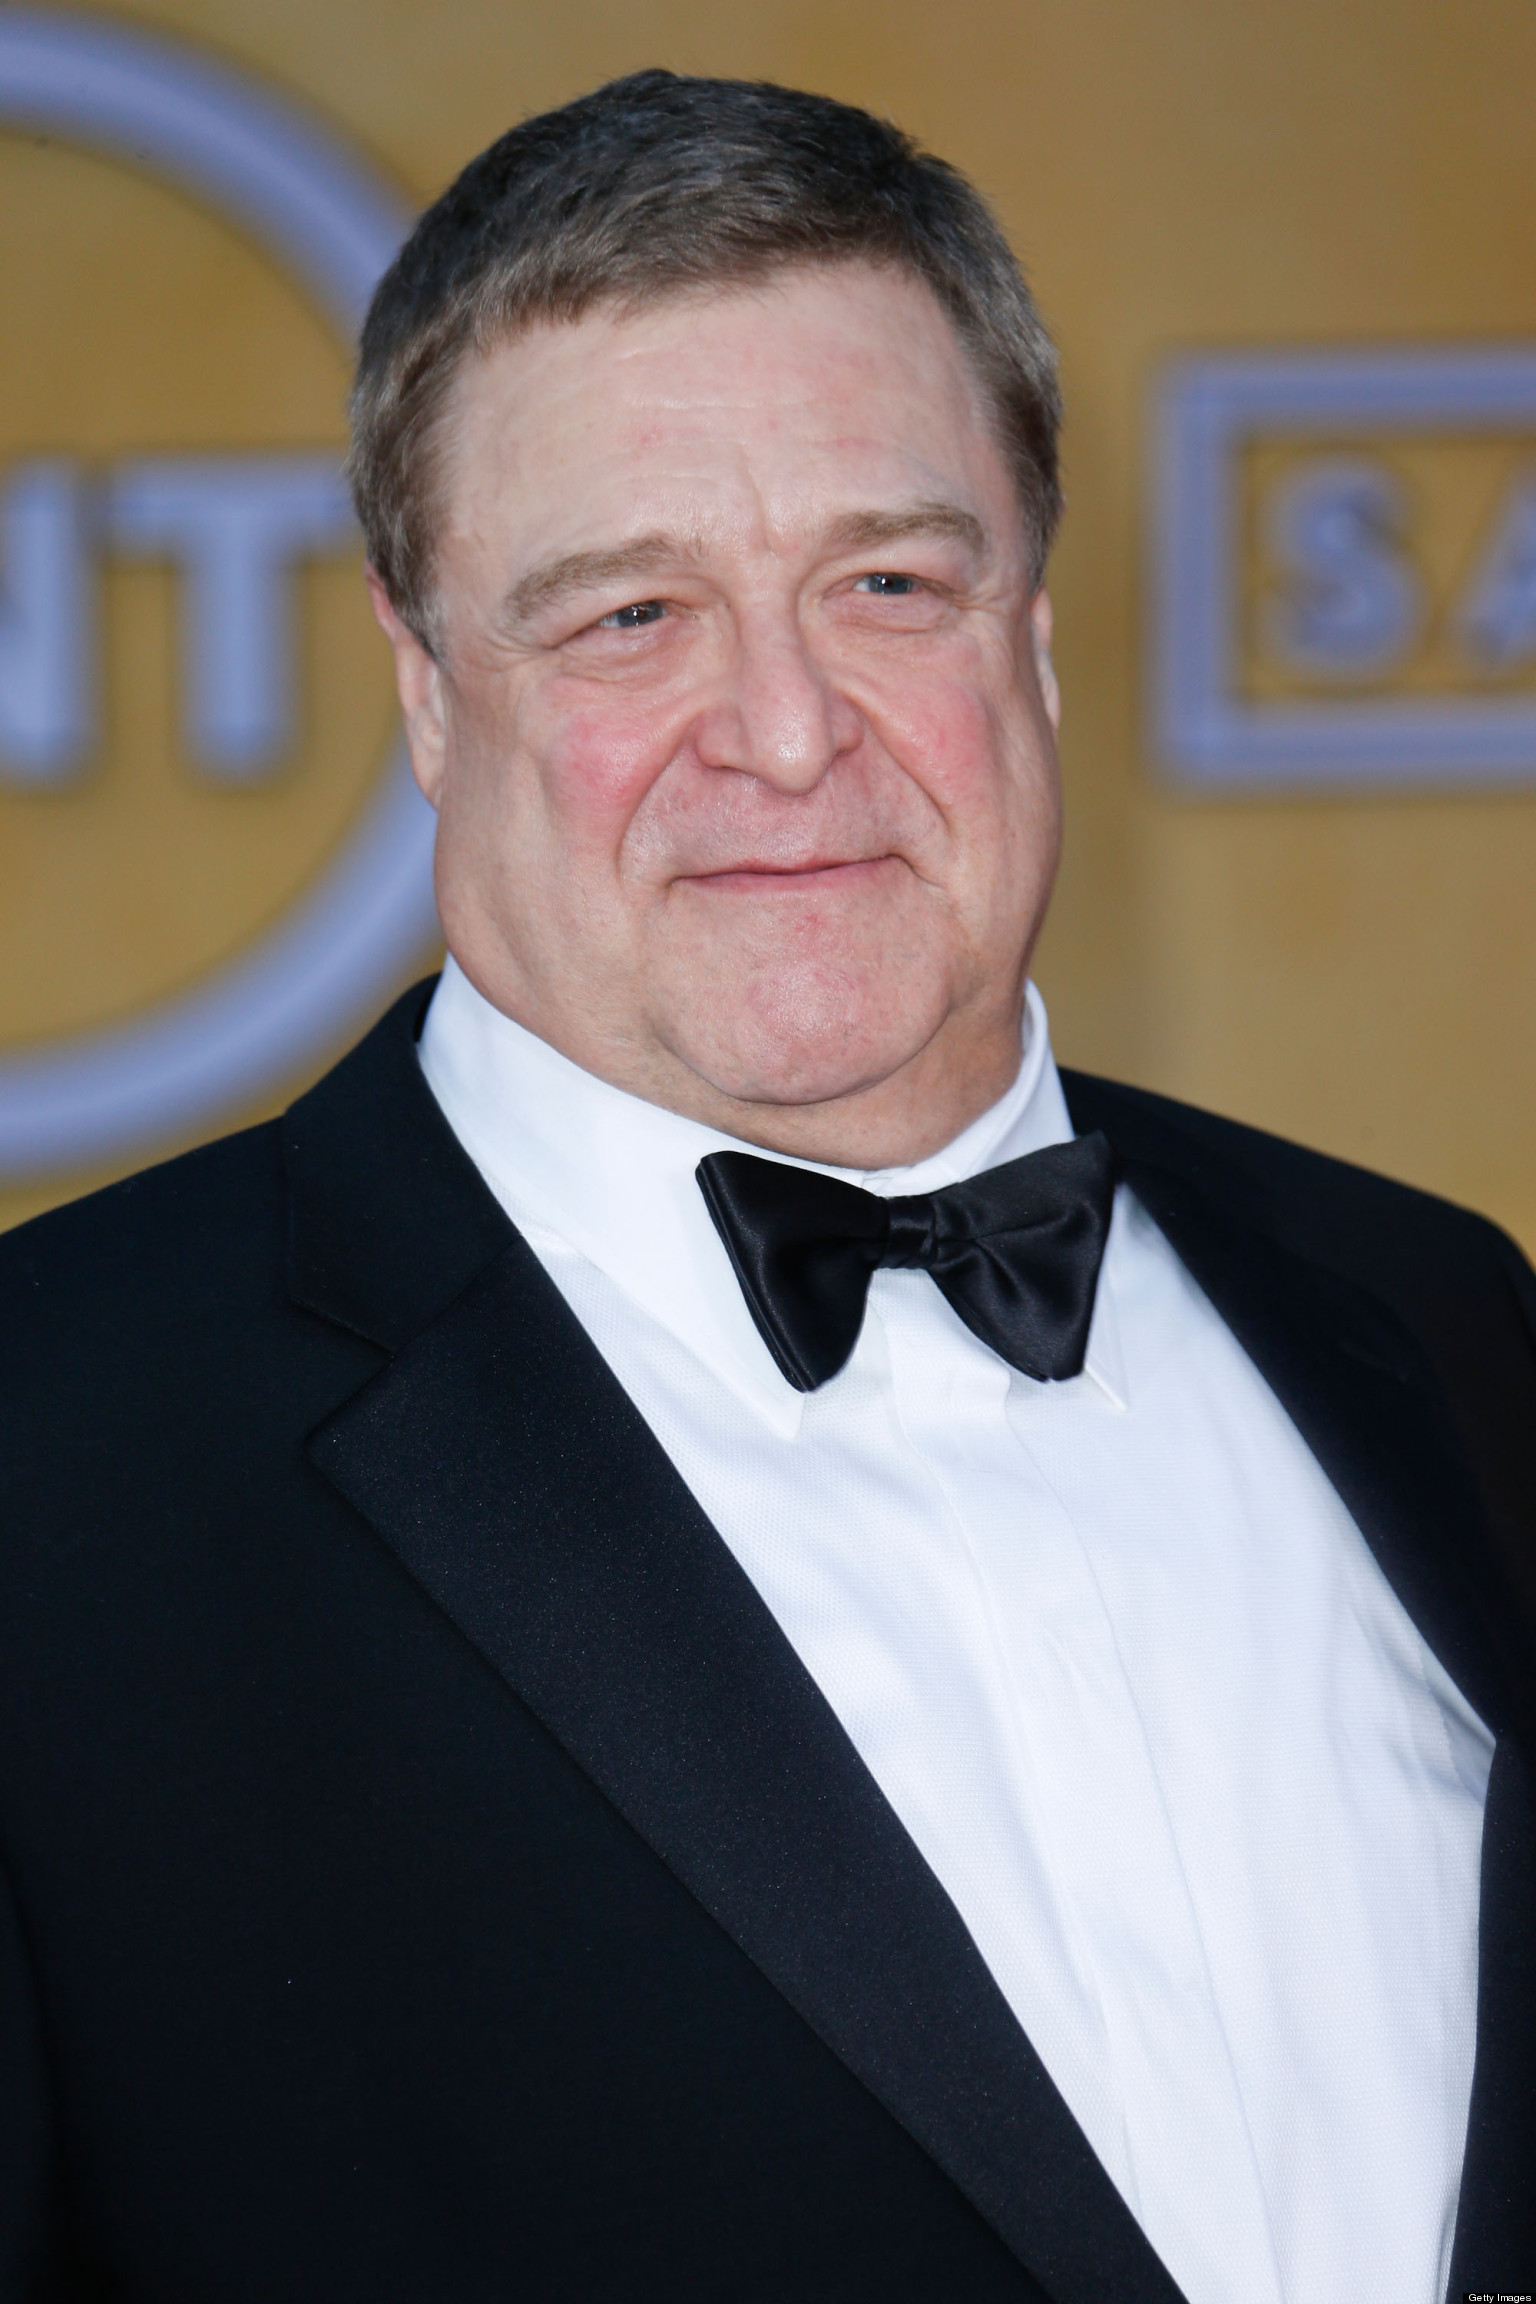 john goodman star jeffjohn goodman 2017, john goodman family, john goodman height, john goodman star, john goodman movies, john goodman zach galifianakis, john goodman twitter, john goodman and jeff bridges, john goodman mark wahlberg movie, john goodman star jeff, john goodman mp3, john goodman pictures, john goodman cancer, john goodman health, john goodman facebook, john goodman awards, john goodman nike academy, john goodman coen brothers, john goodman rex tillerson, john goodman wdw